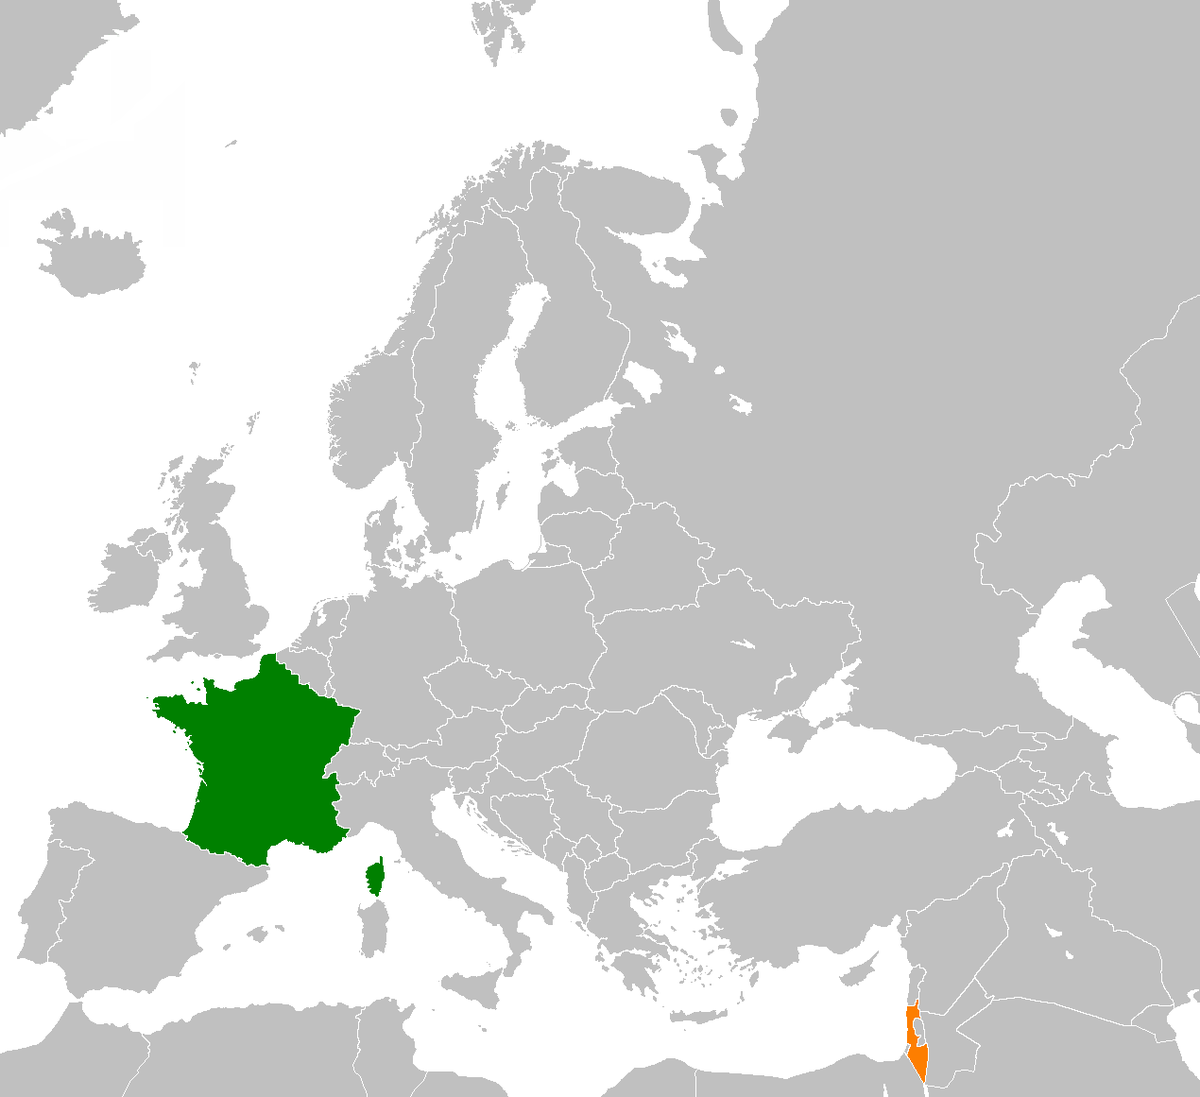 FranceIsrael Relations Wikipedia - Israel world map